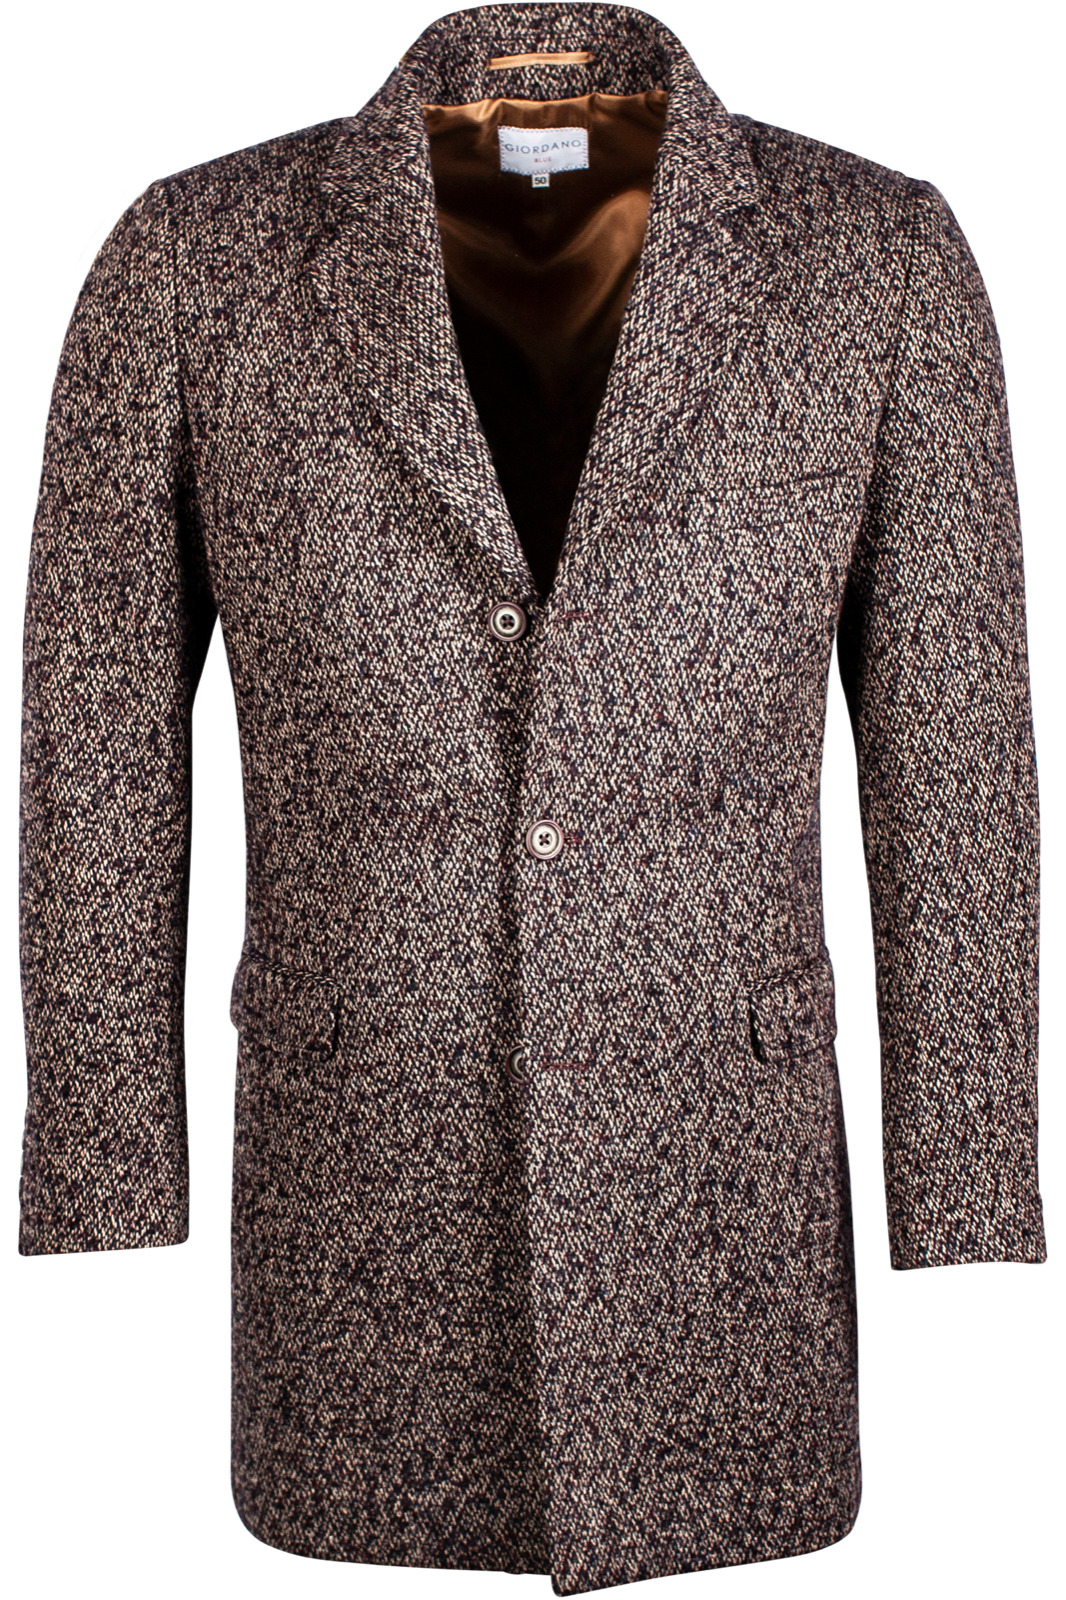 Giordano 922627 Col 60 Mid Length Blue & Brown Coat